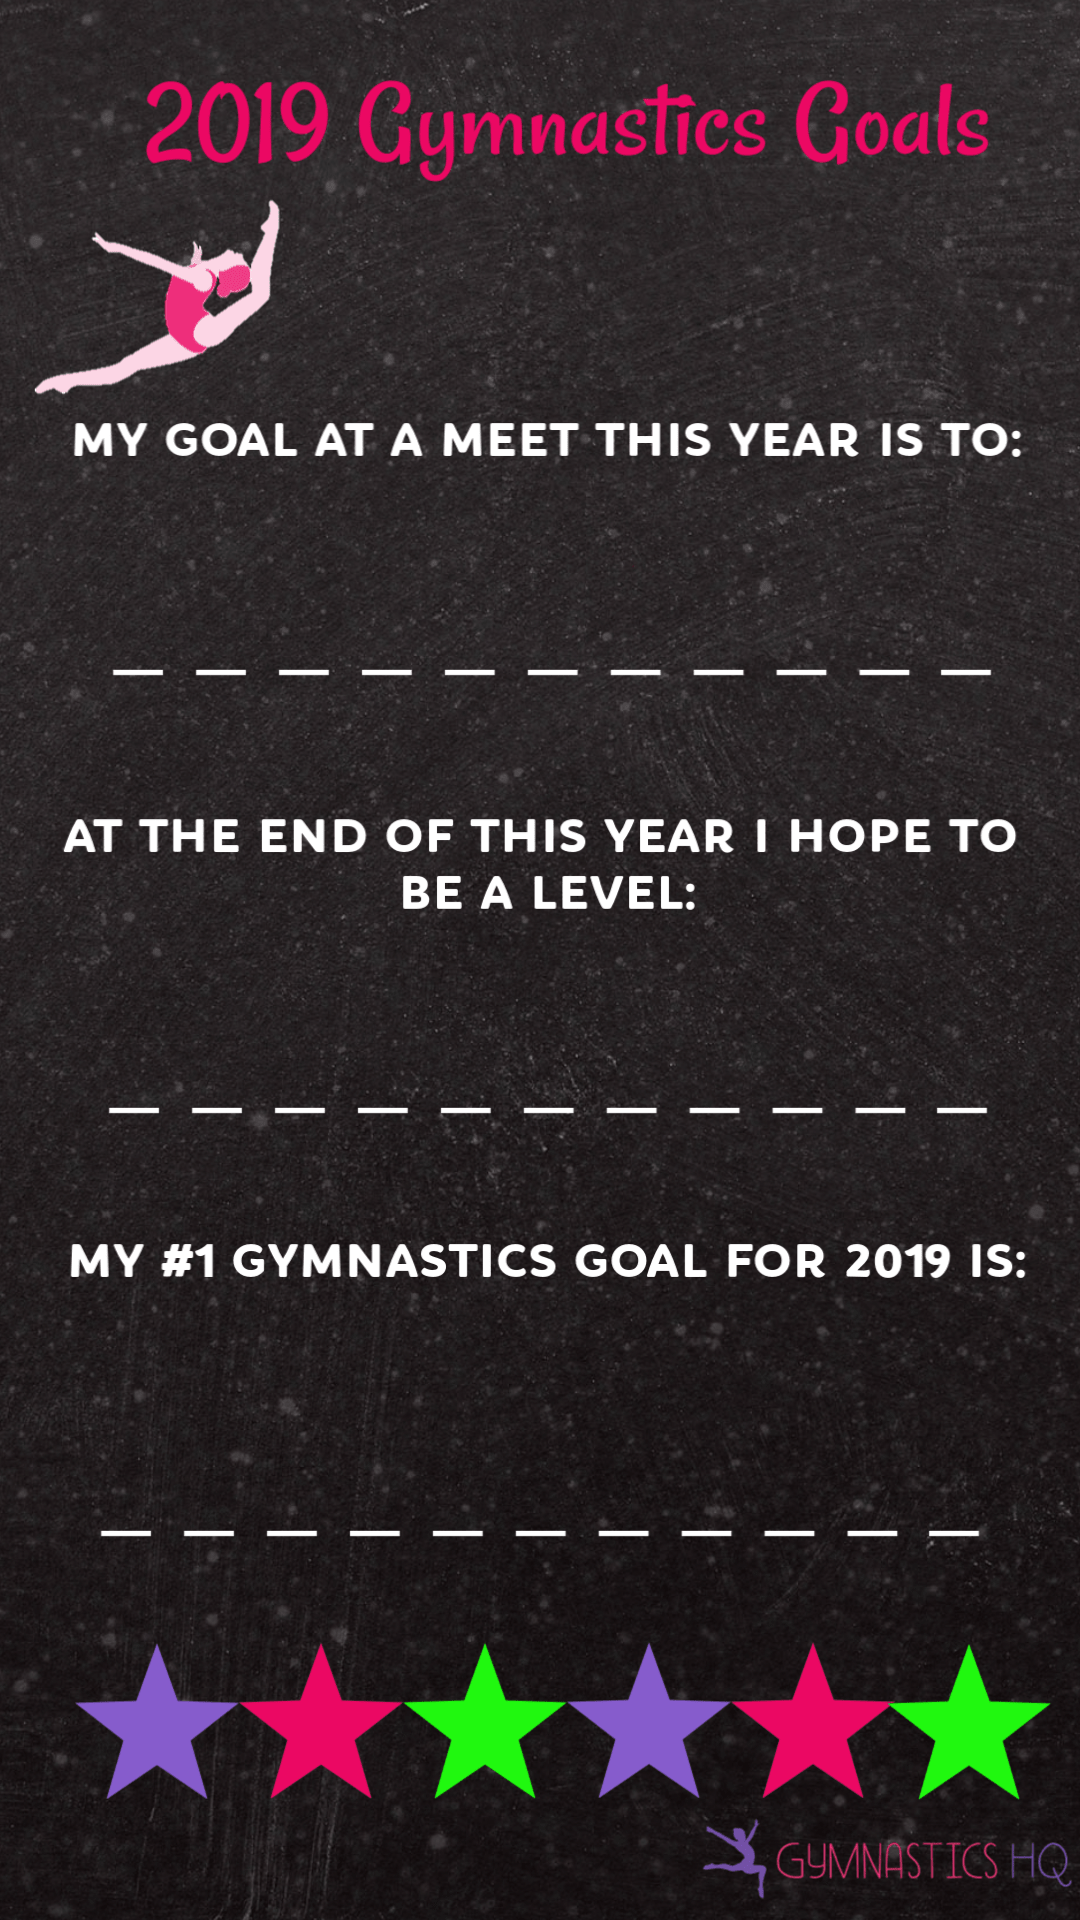 gymnastics goals instagram stories templates